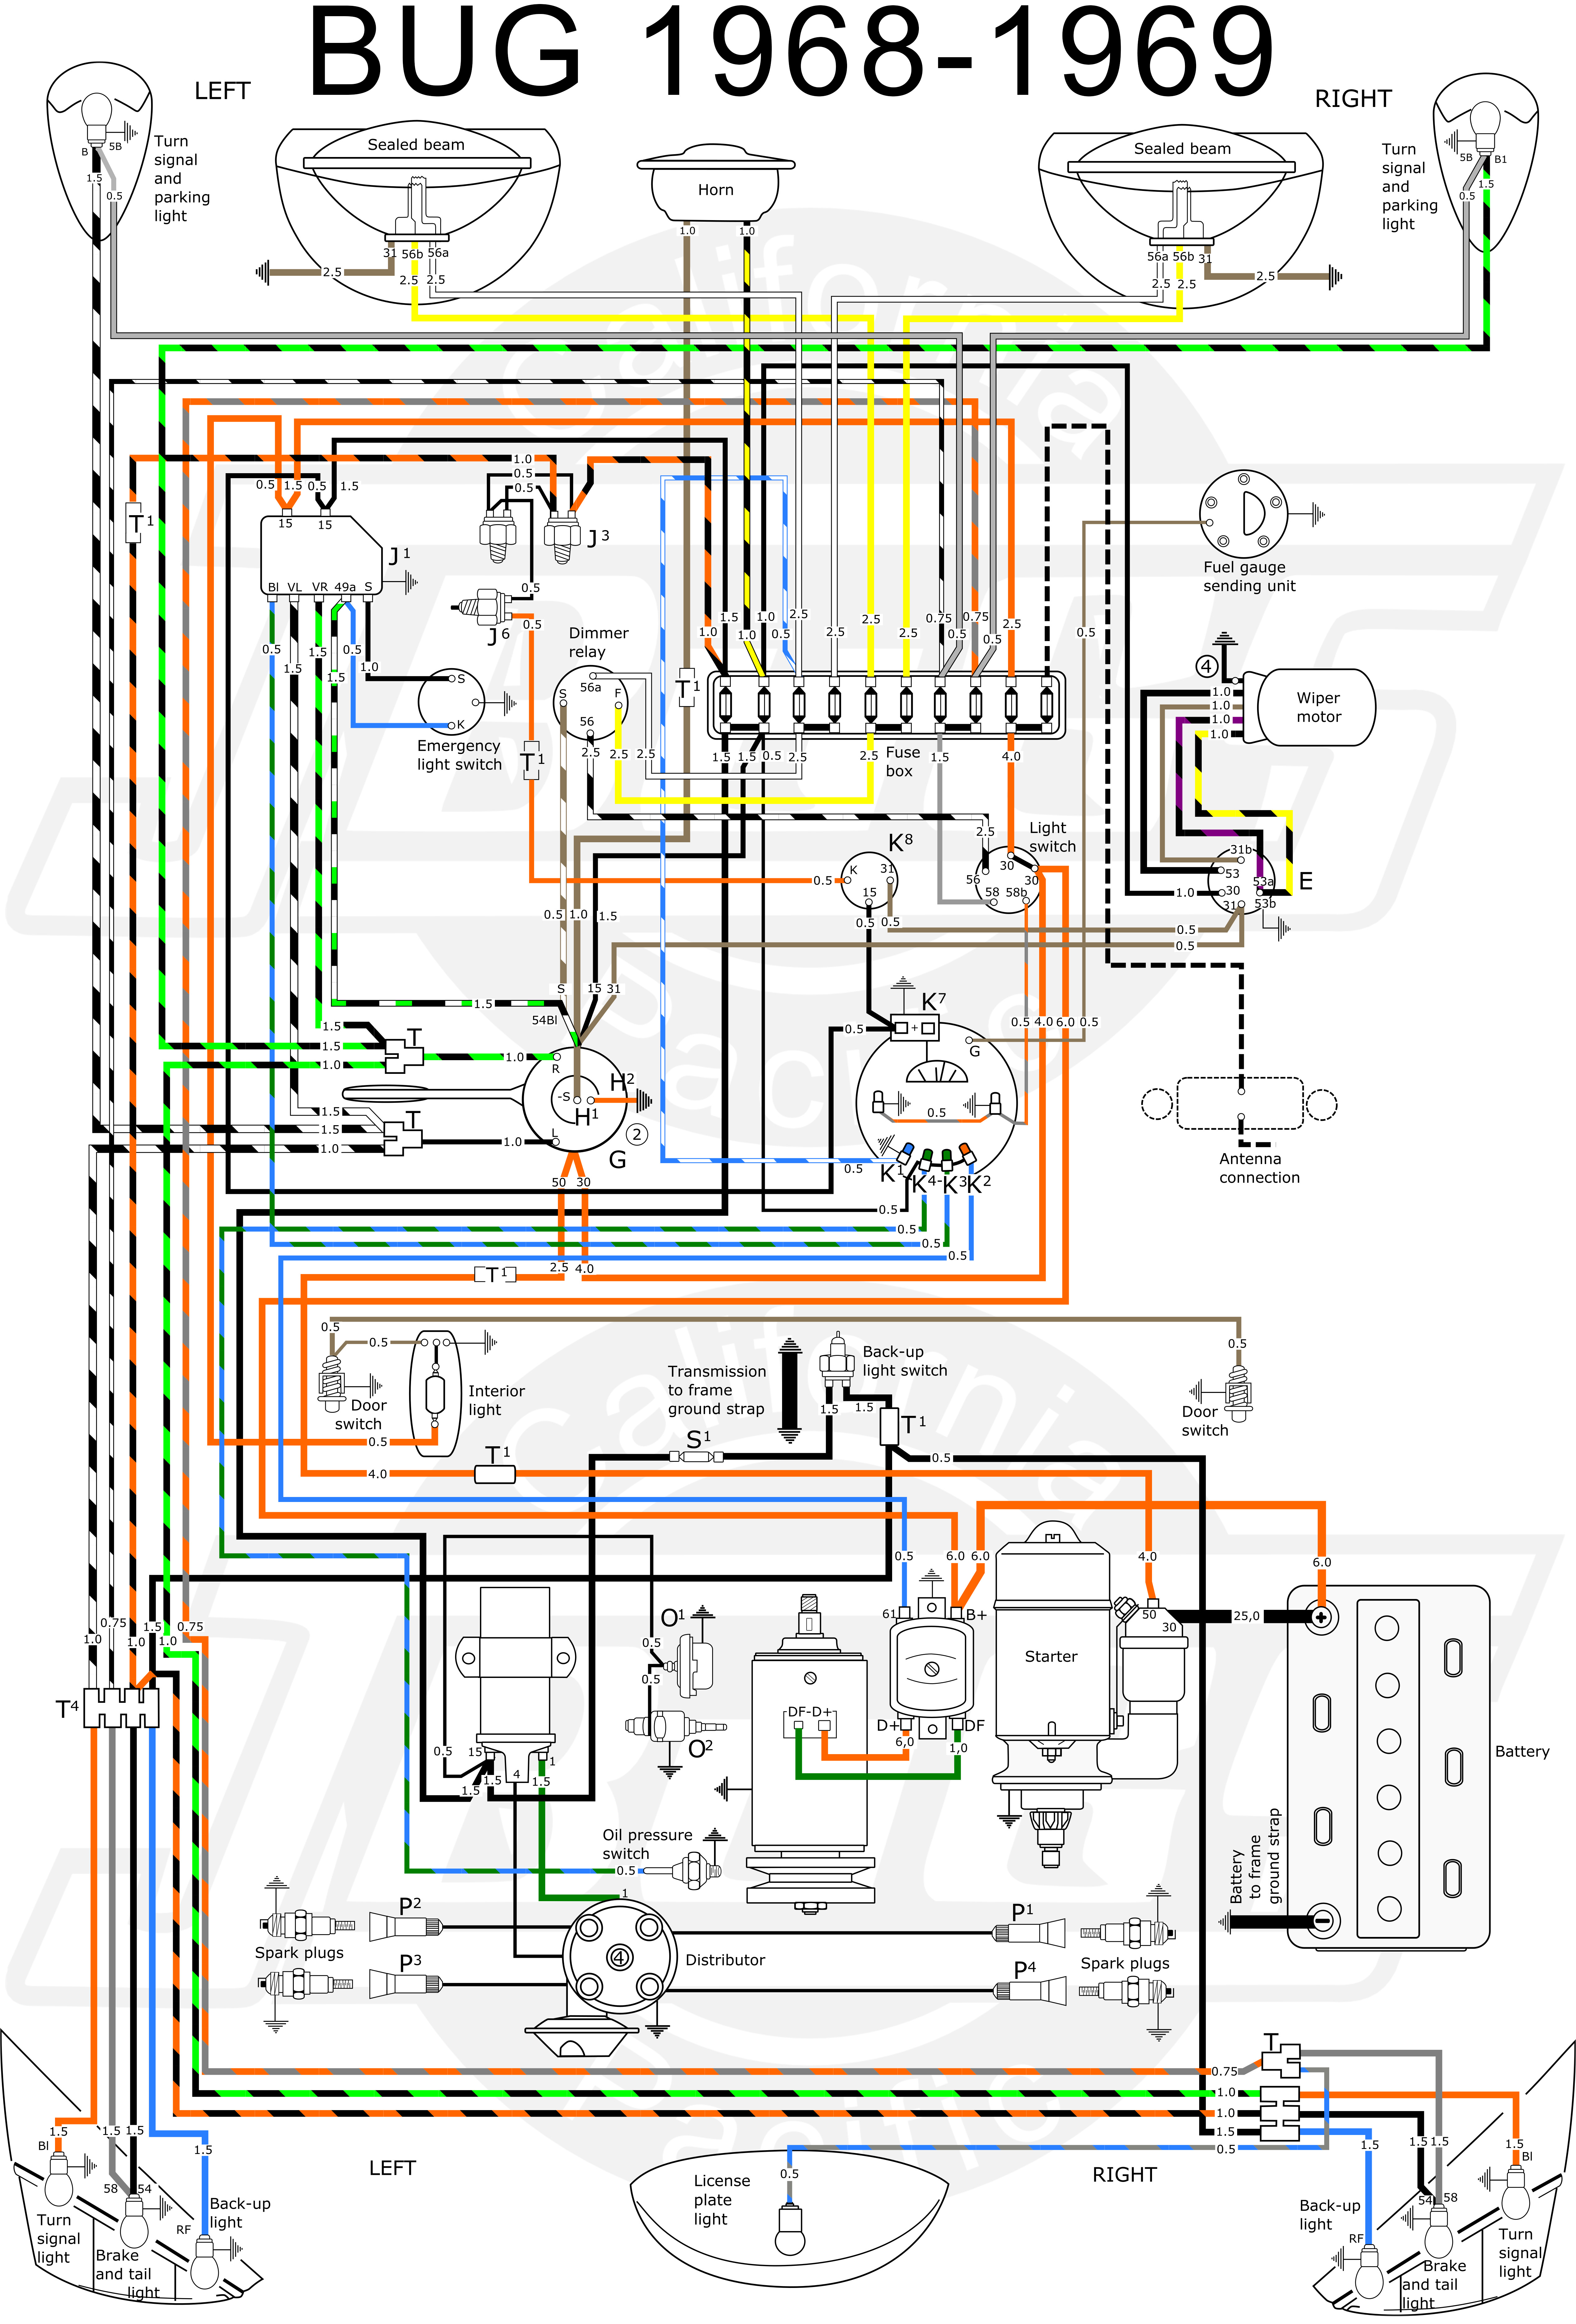 93954 Vw Cabrio Wiring Diagram